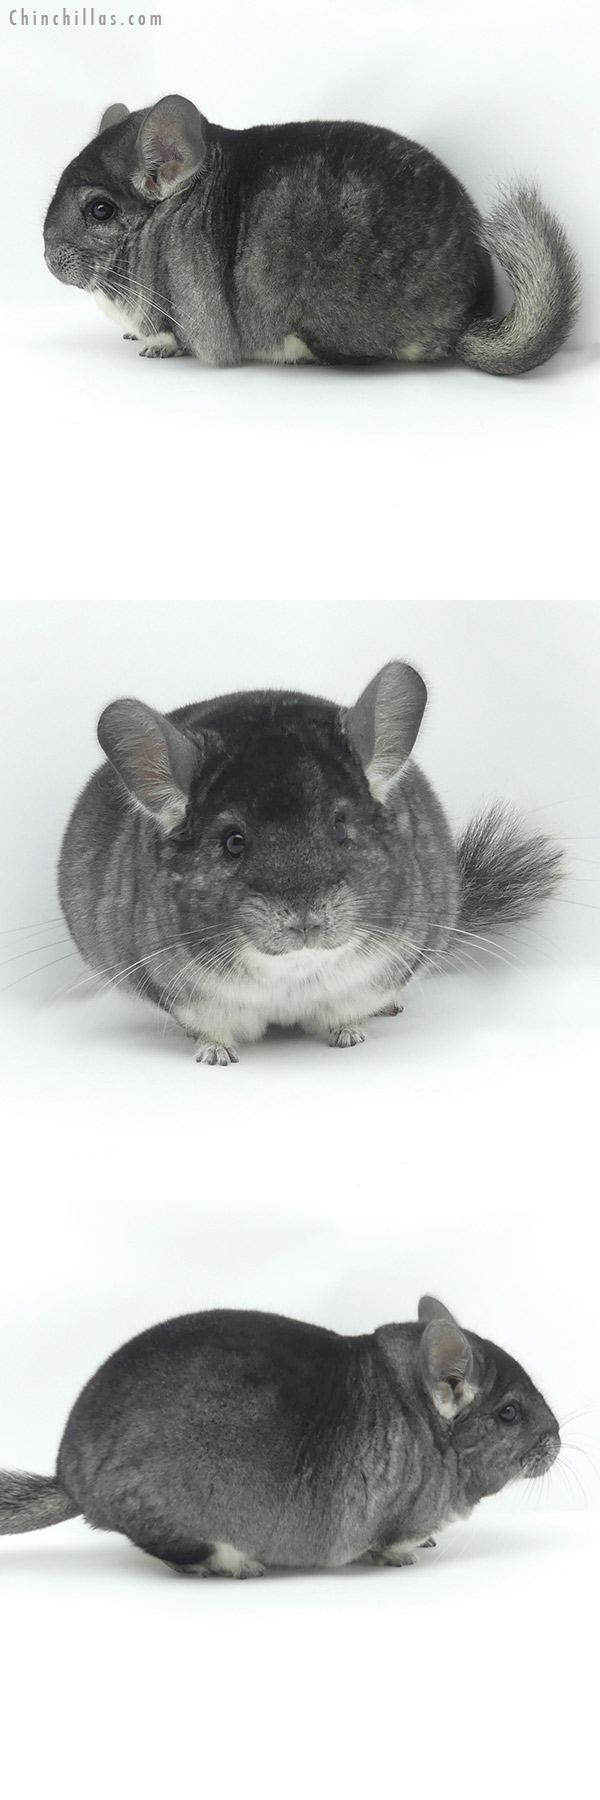 20040 Blocky Herd Improvement Quality Standard Male Chinchilla